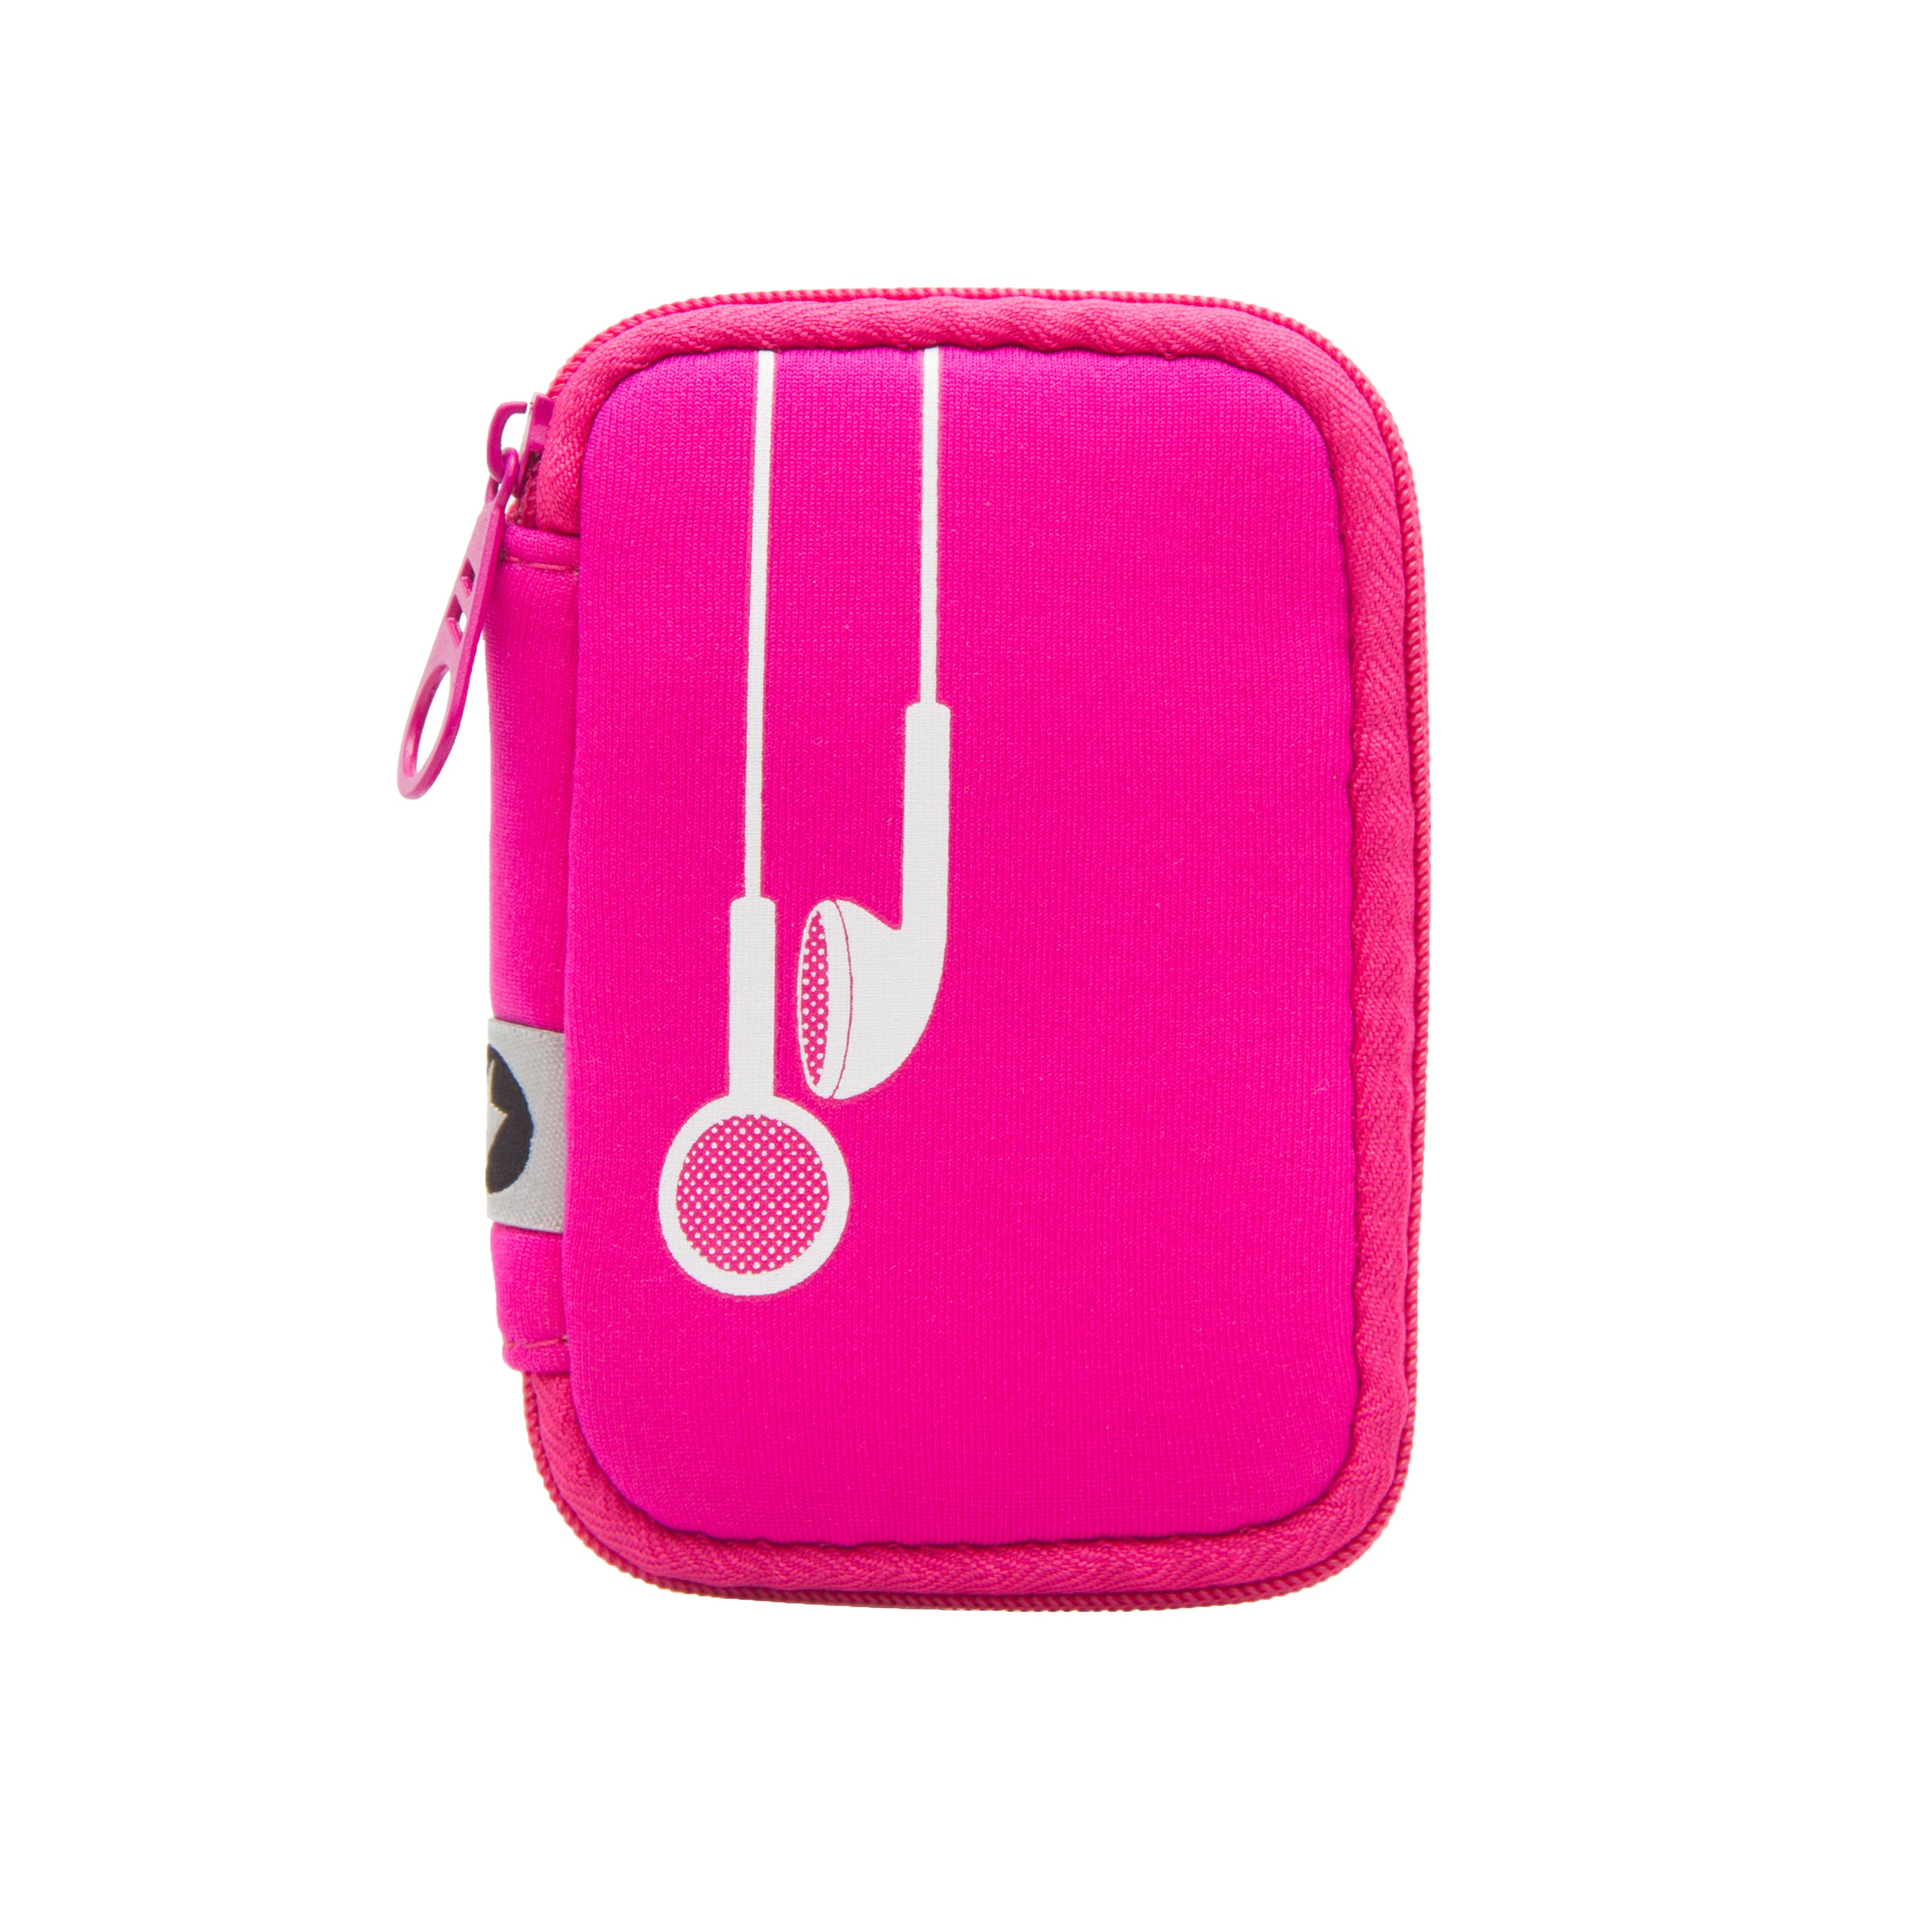 Earbuds case pink - earbuds case included